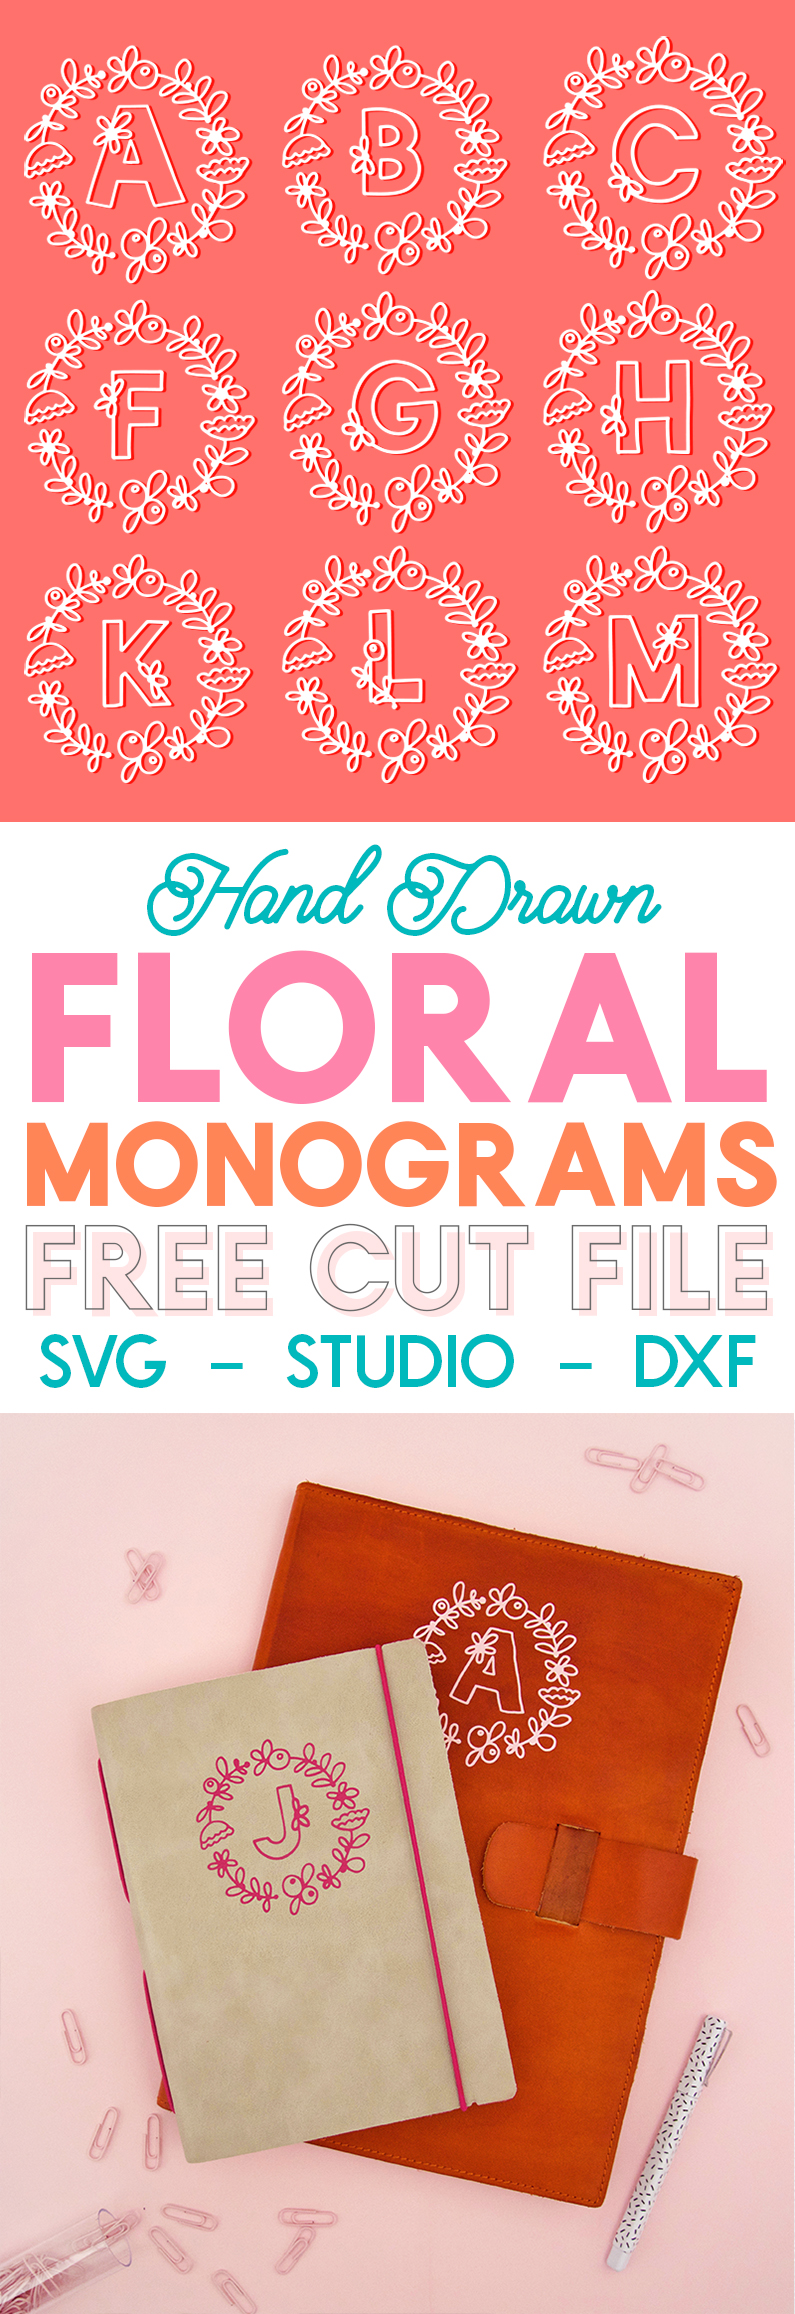 free floral monograms - svg cut files for silhouette or cricut cutting machines